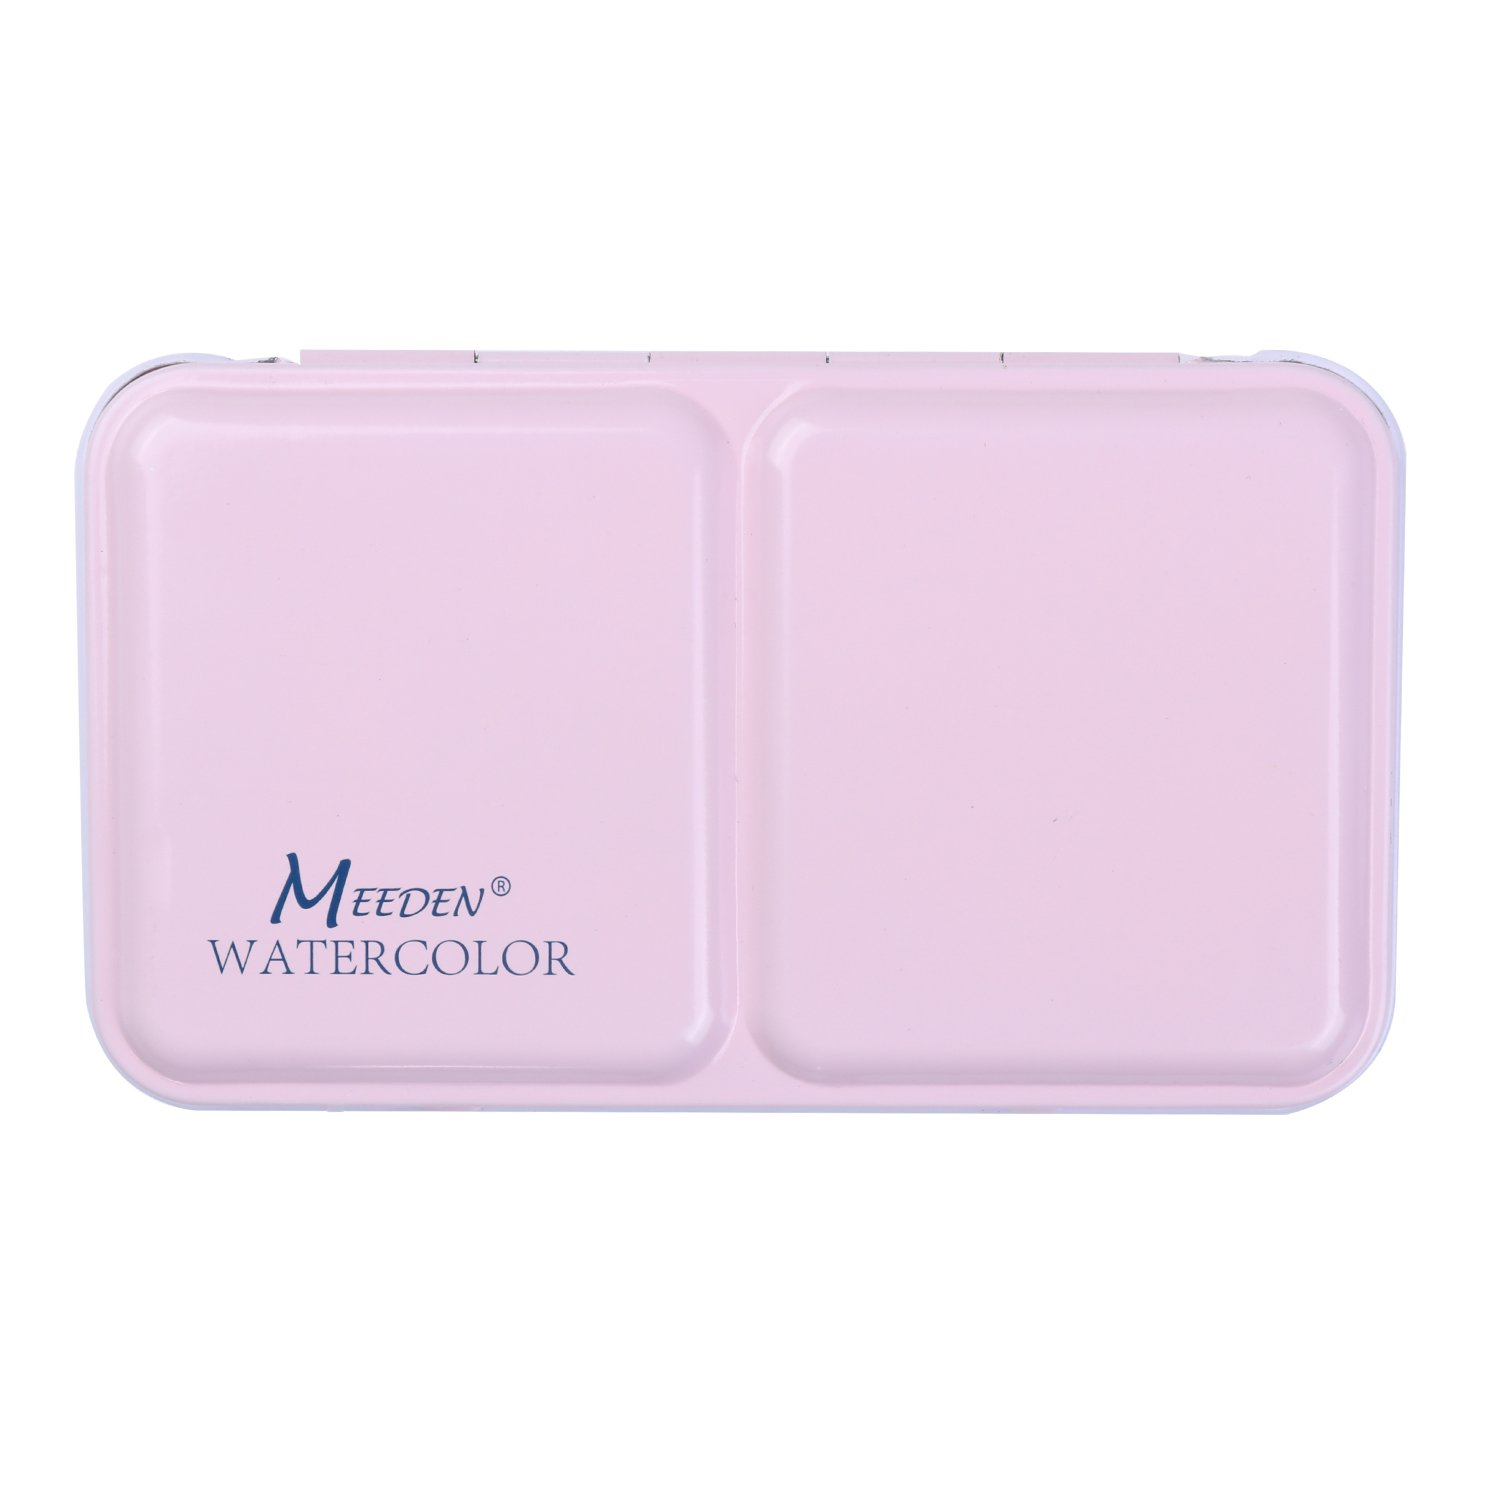 MEEDEN Empty Watercolor Tins Box Palette Paint Case Small Pink Tin with 12 Pcs Half Pans